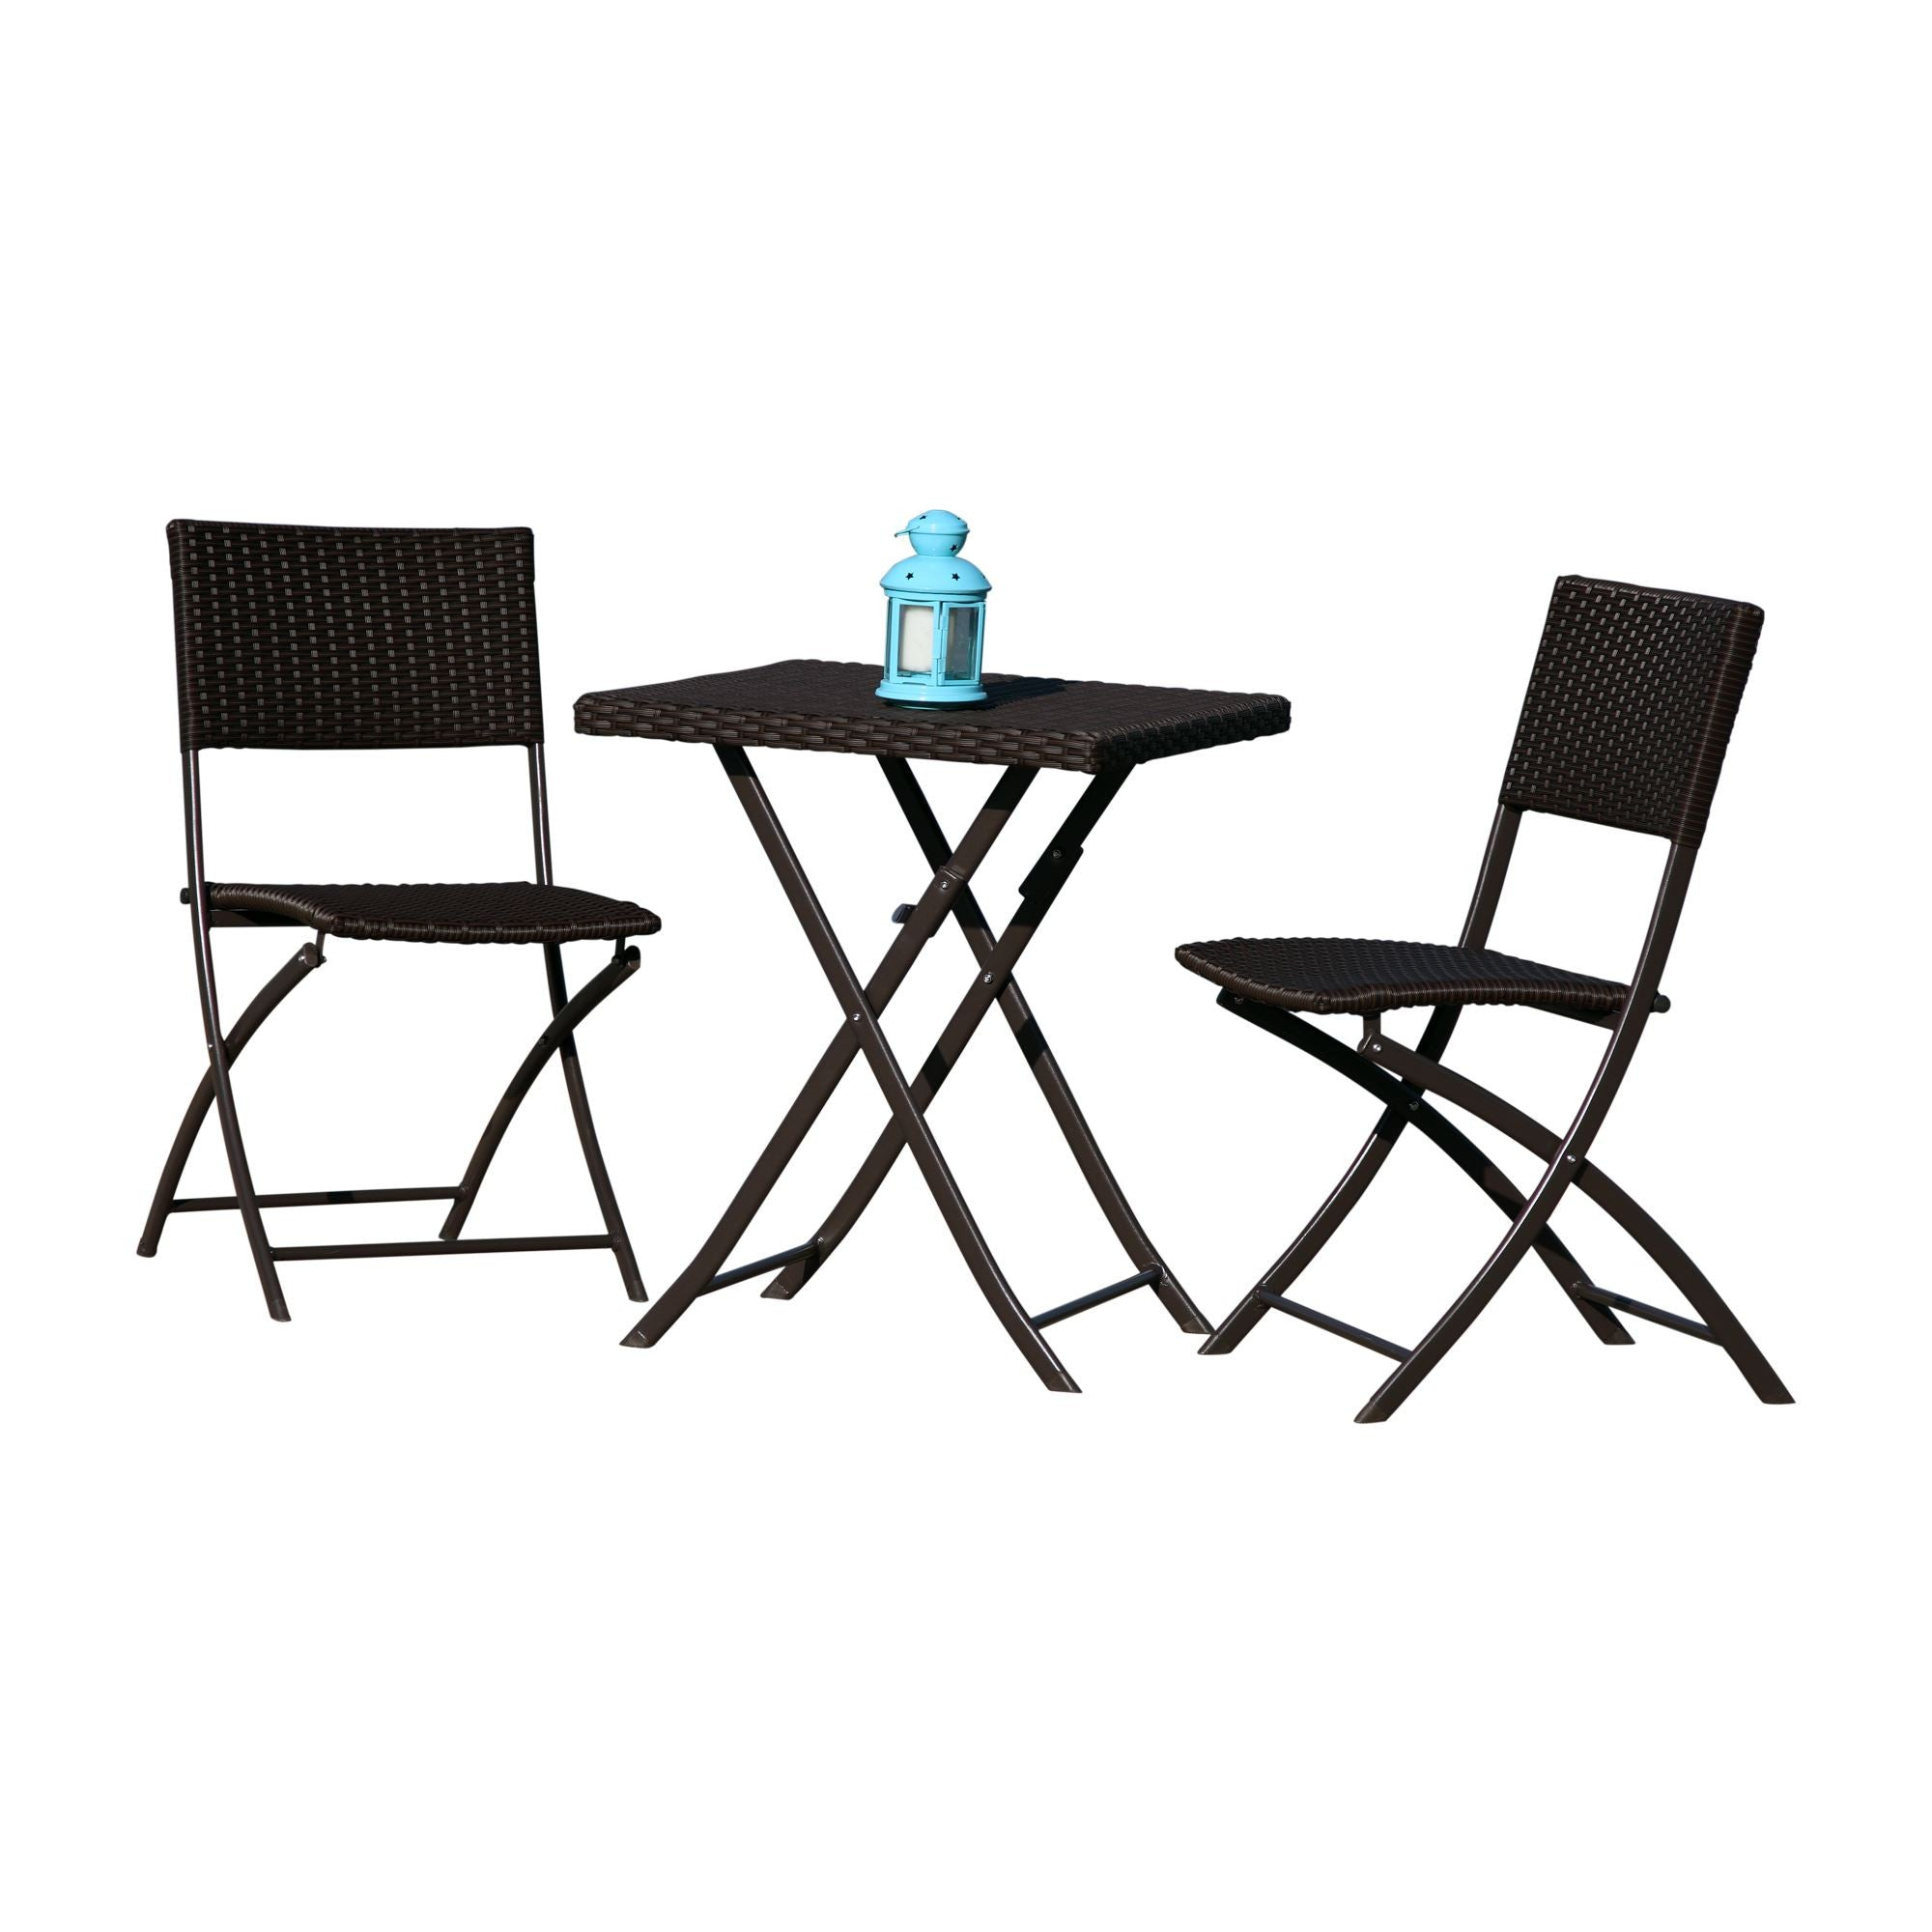 Folding Chairs BetterPatio